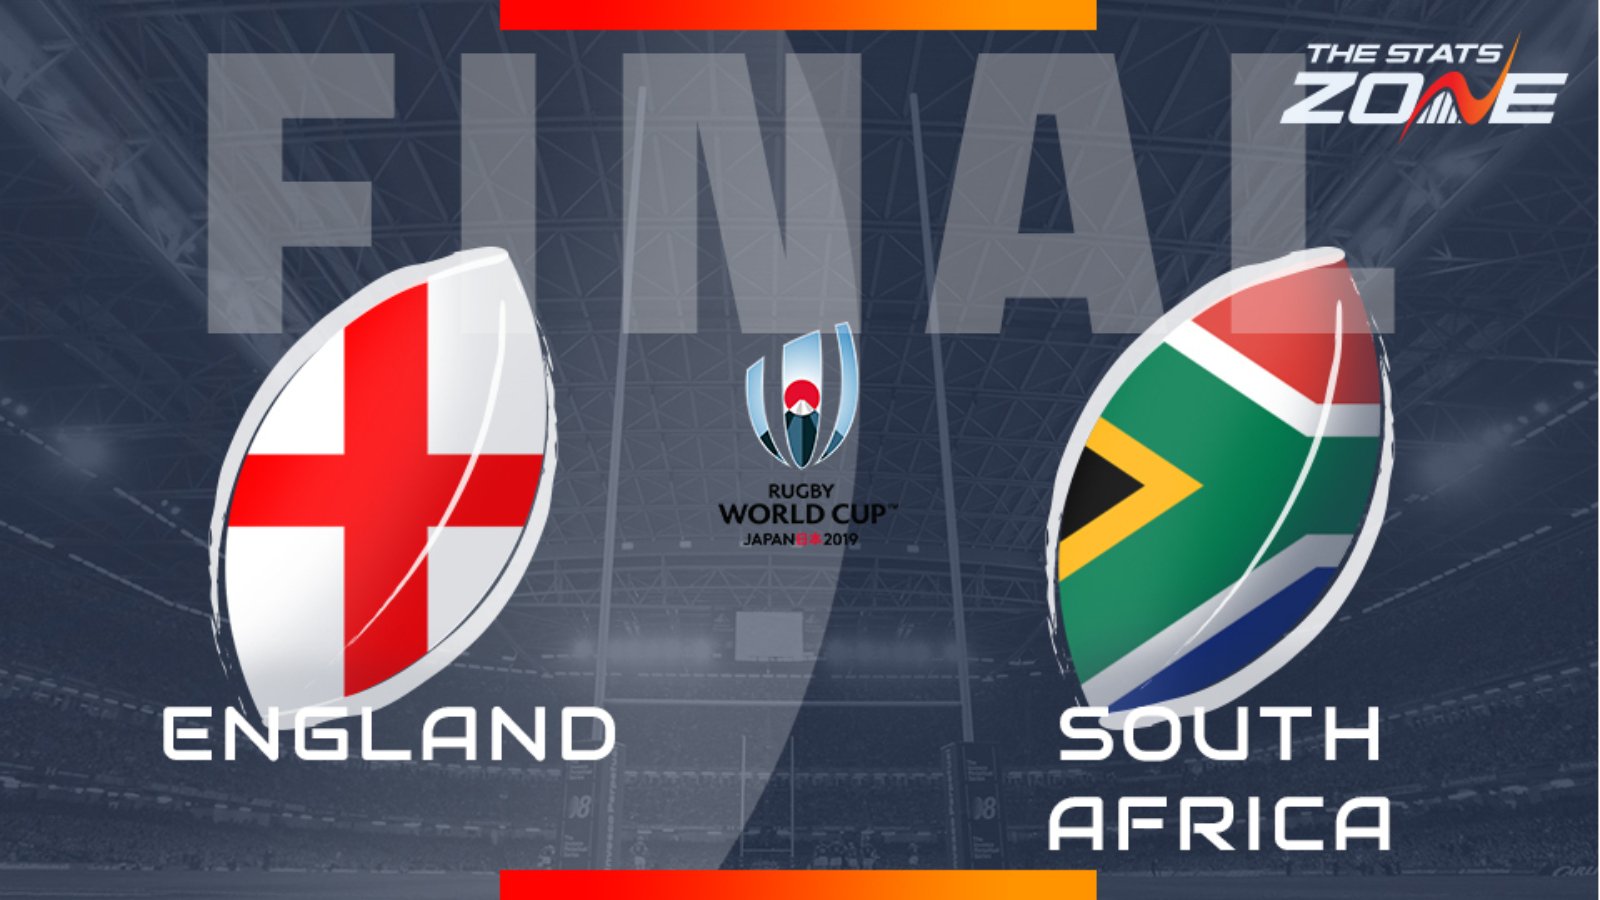 https://cdn.thestatszone.com/uploads/thumbnails/_r169l/2019_Rugby_Union_World_Cup_Finals_England_South_Africa.jpg